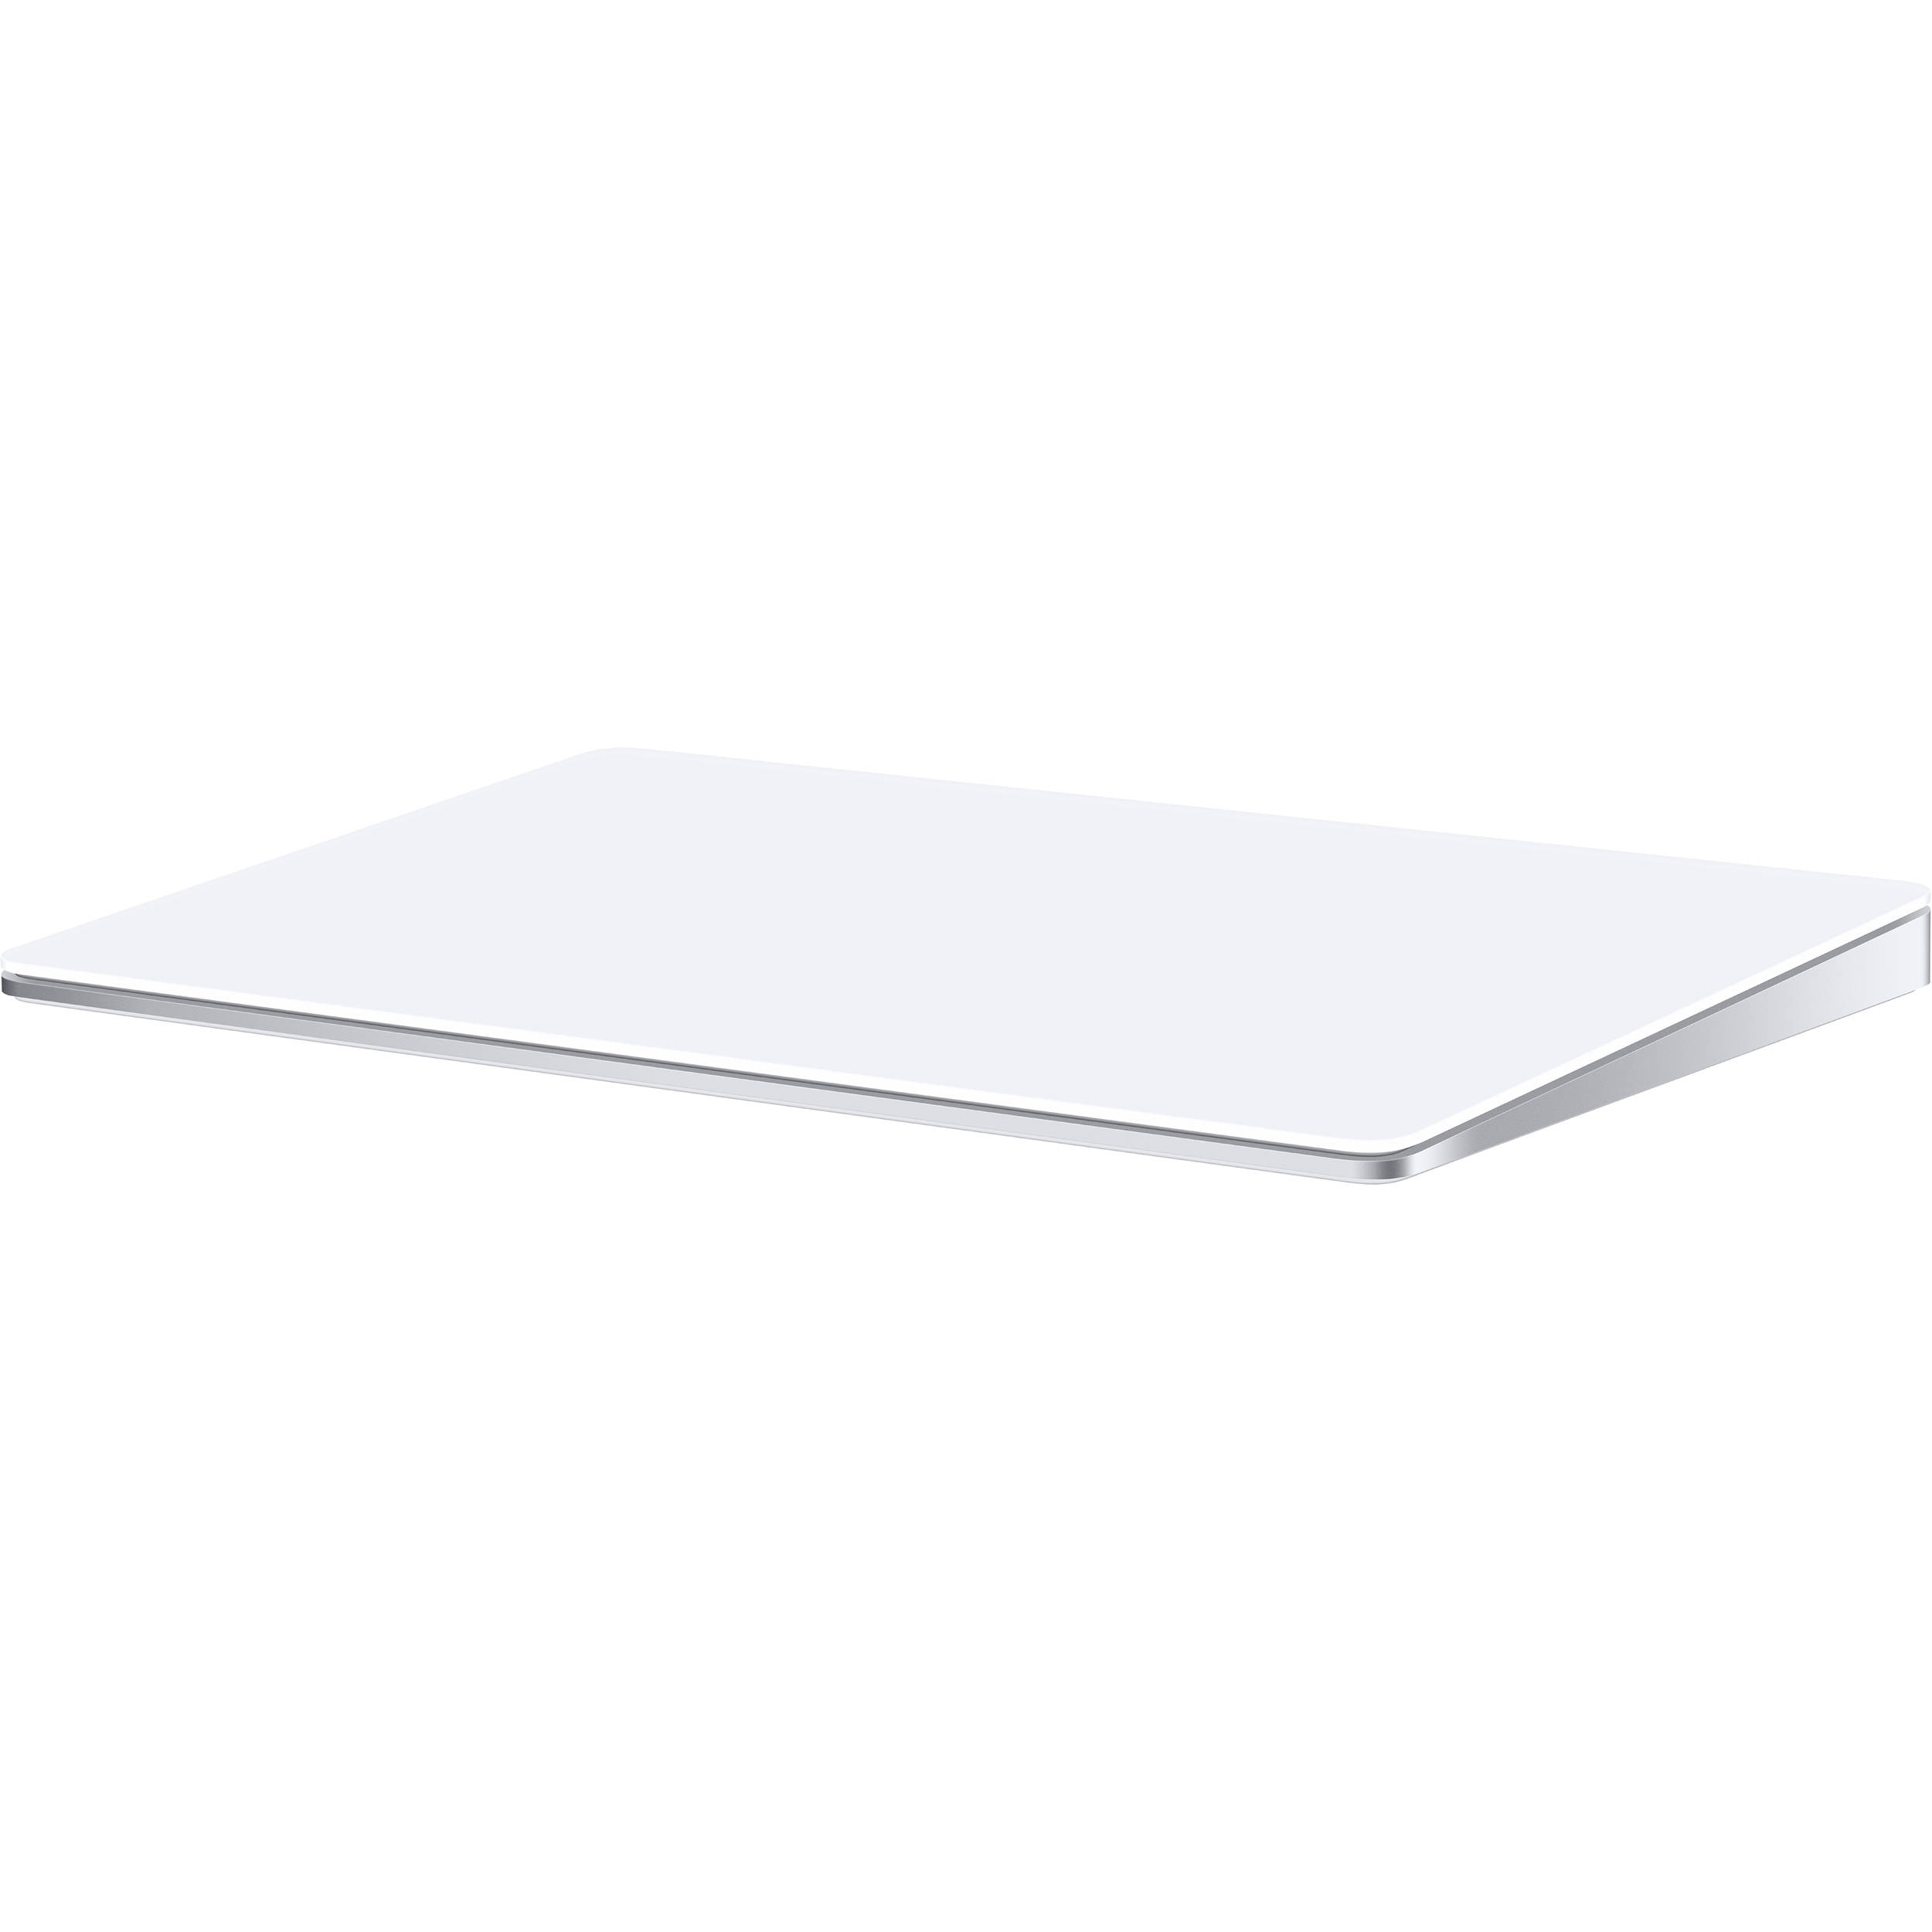 APPLE TRACKPAD DRIVER DOWNLOAD